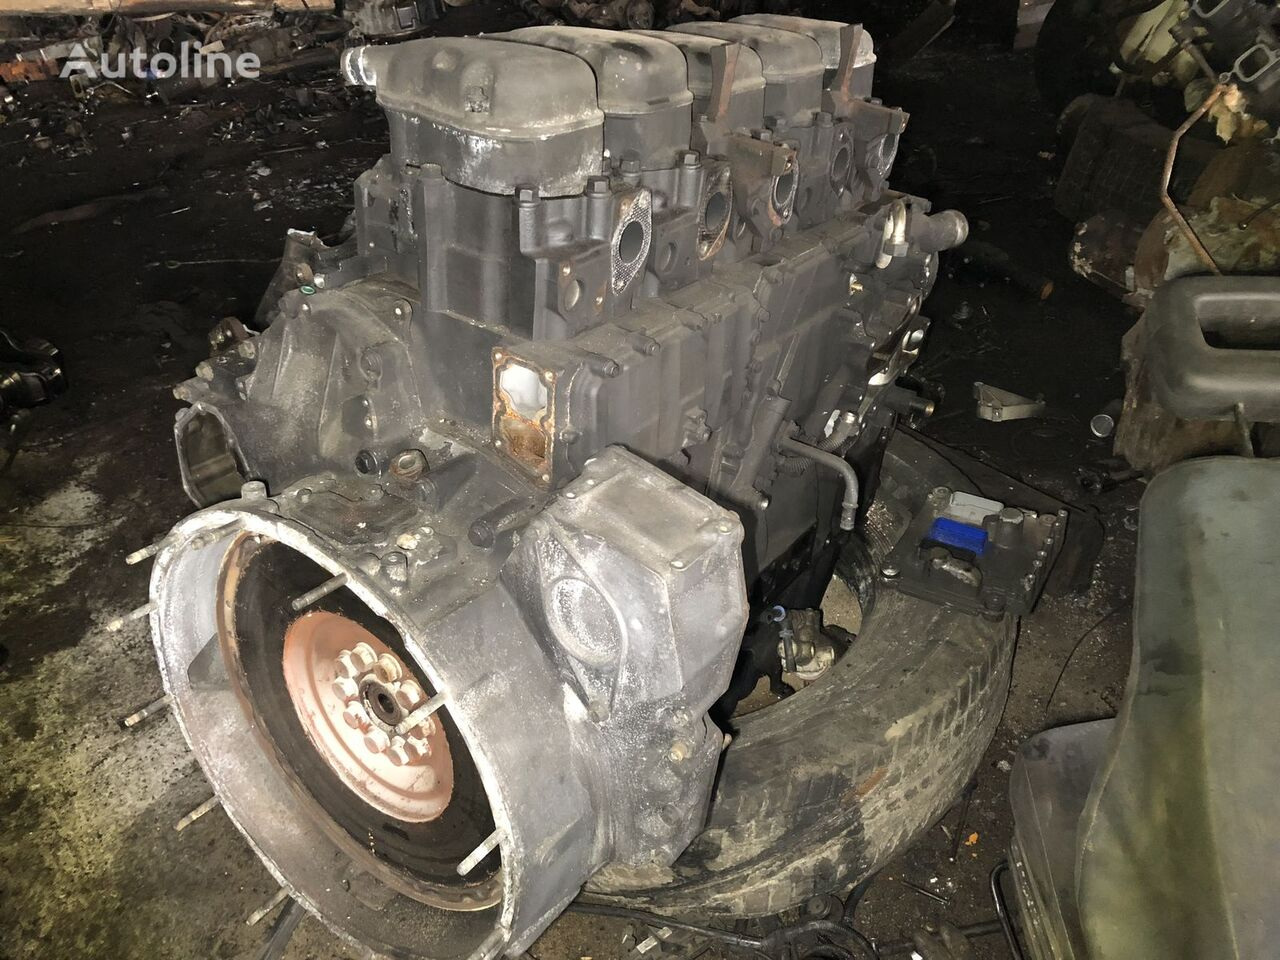 SCANIA P220 DC9 39 L01 engine for truck